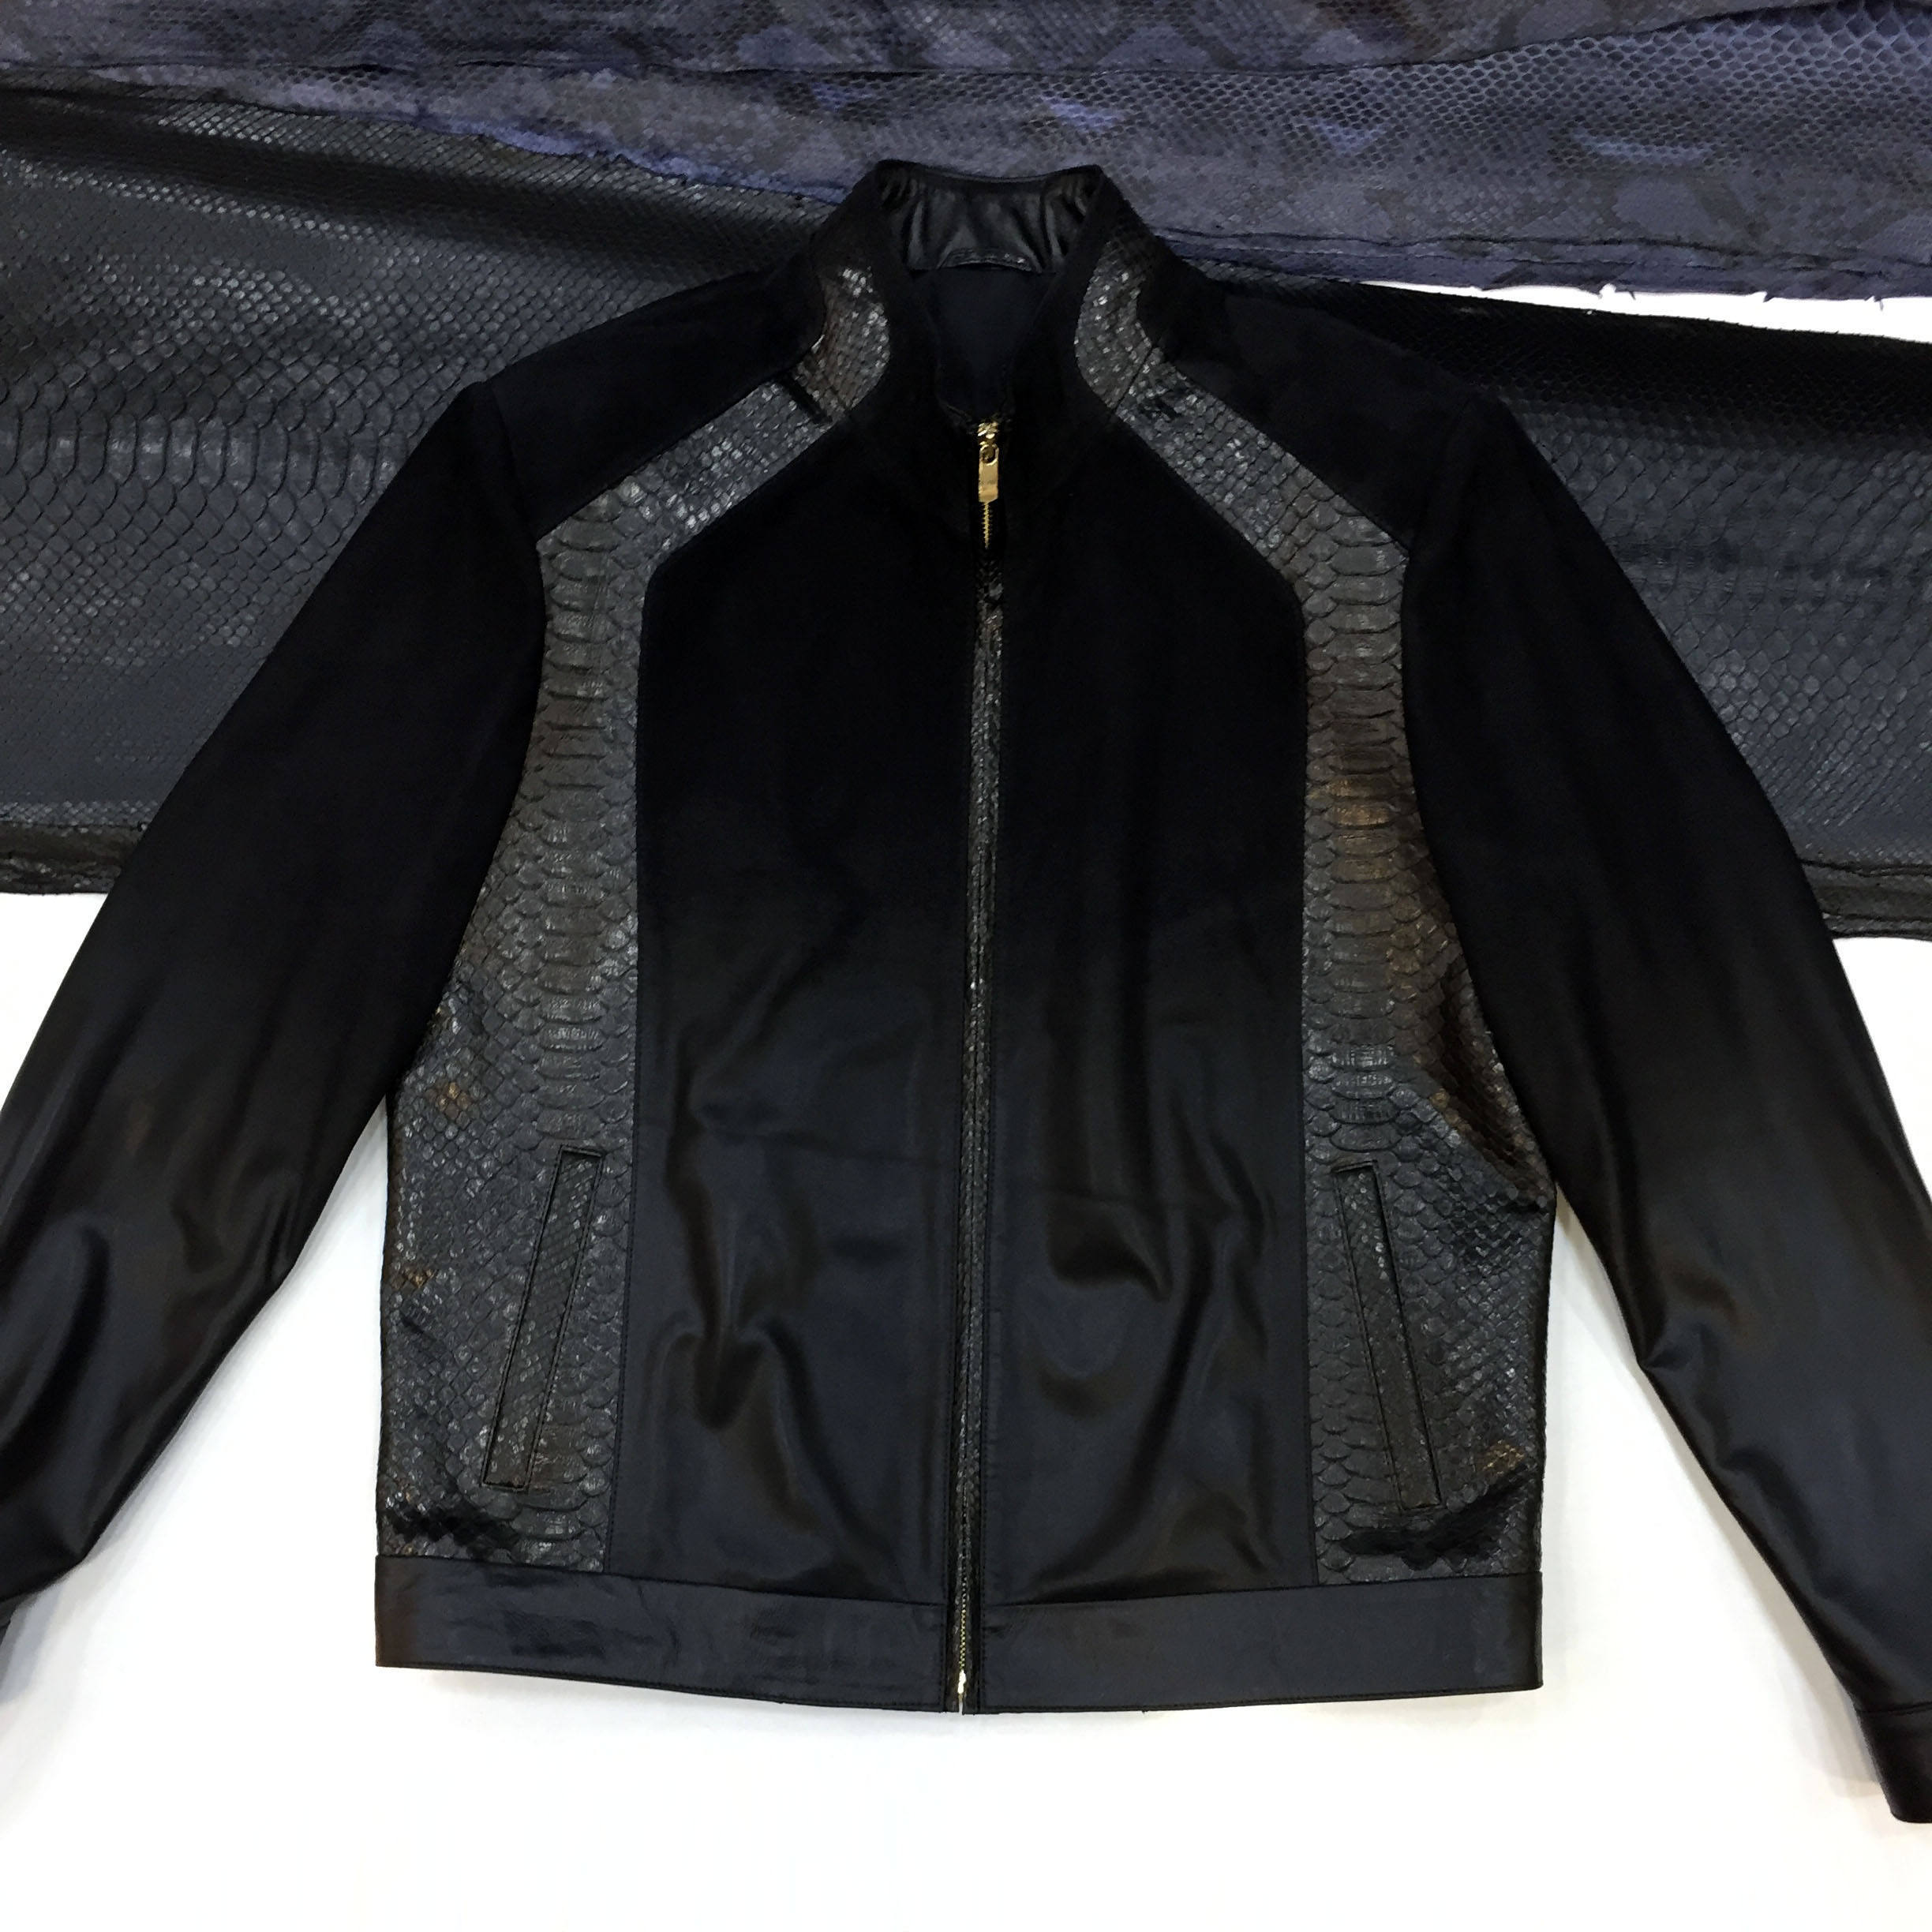 Degrade Suede And Leather Genuine Python Real Exotic Snake Skin Men's Black Jacket